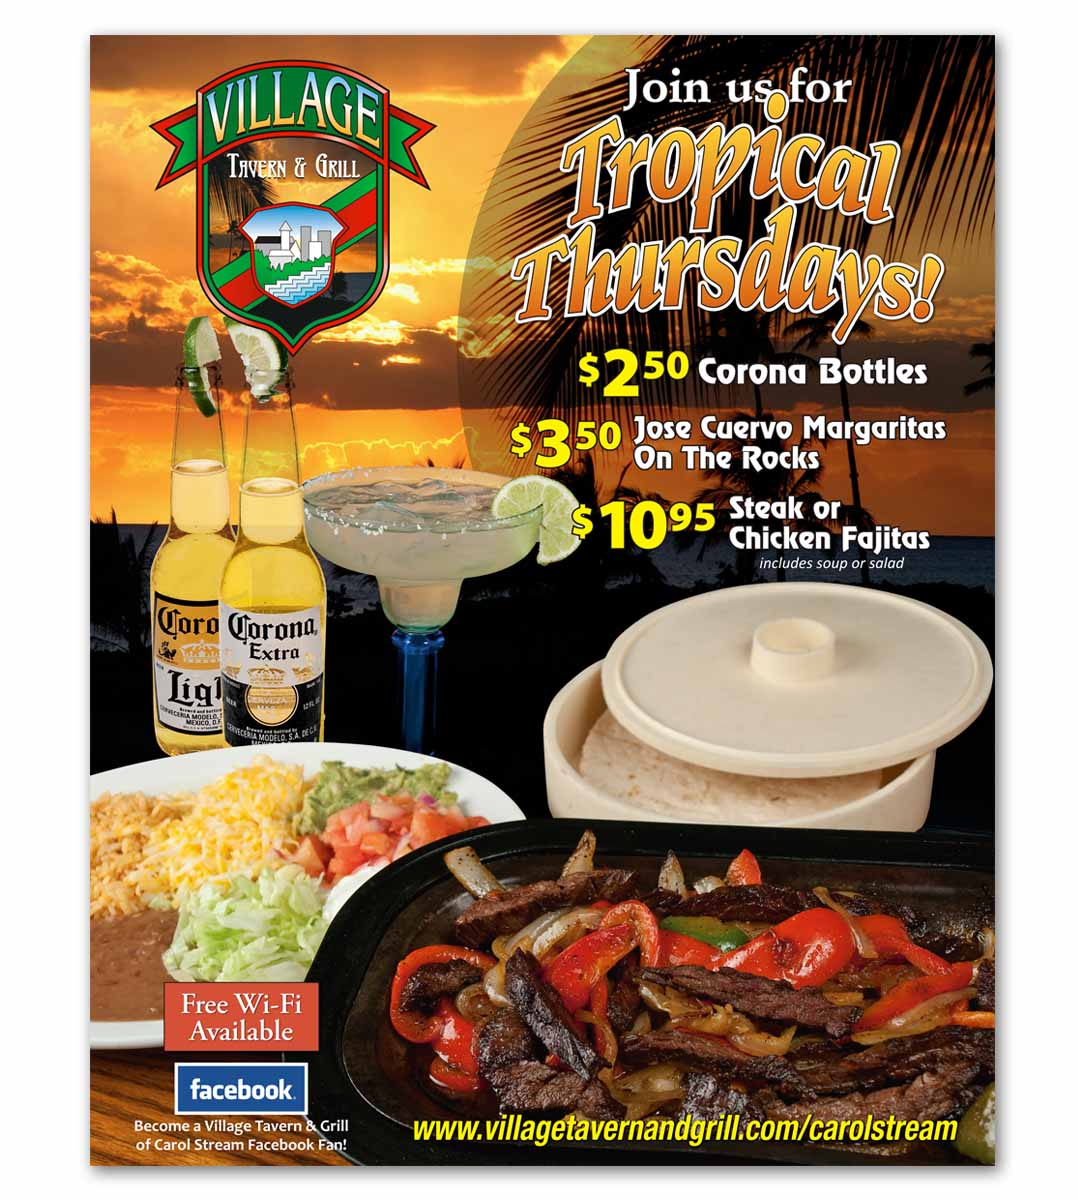 Composite image - fajitas on the beach, from Roselle Graphic Designer Controlled Color, Inc.